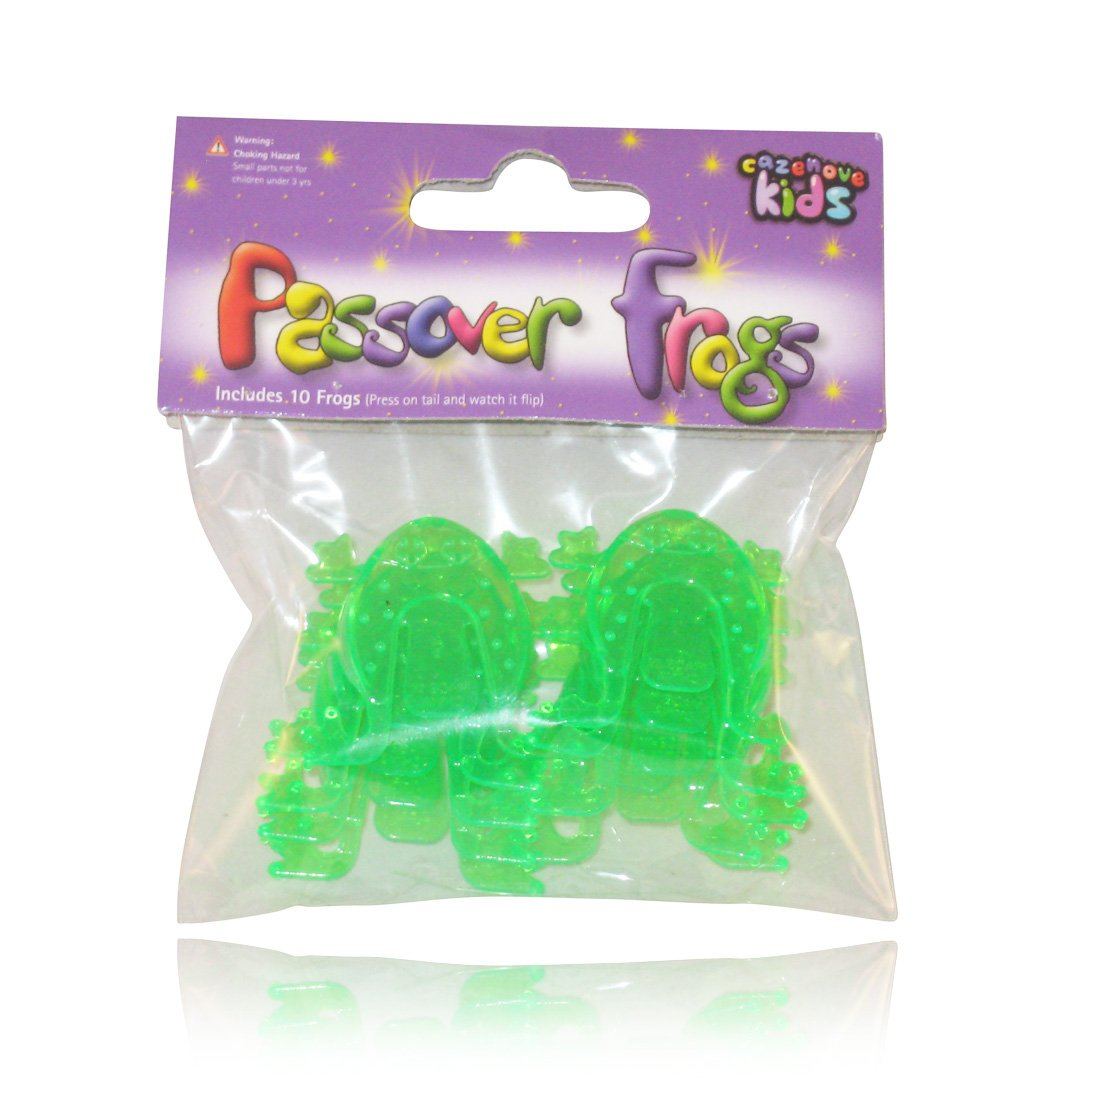 for Children to Reenact the Plagues And the Kids At Heart Passover Flip Frogs Great for Your Pesach Seder Cazenove SG/_B0181GDHSG/_US 10 Pack